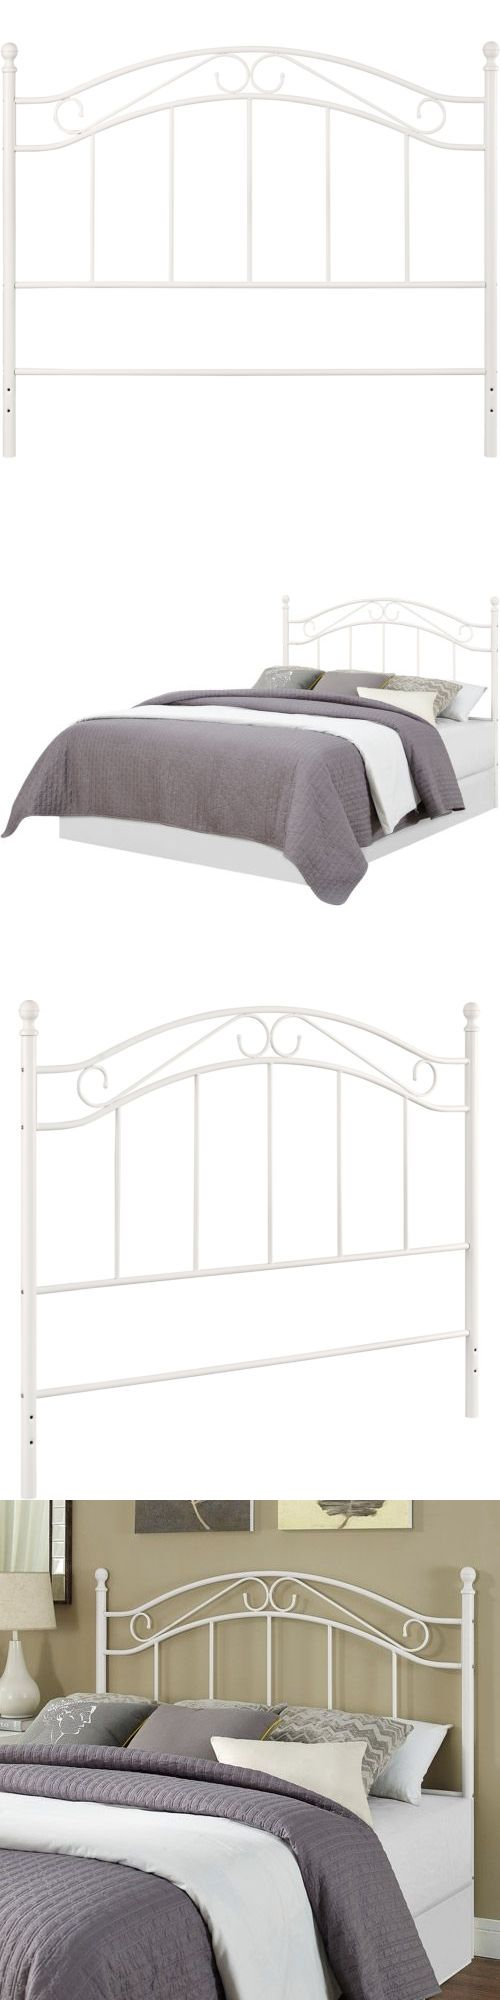 Headboards And Footboards 109064: White Headboard Metal Queen Full Bed Size  Bedroom Furniture Frame Traditional